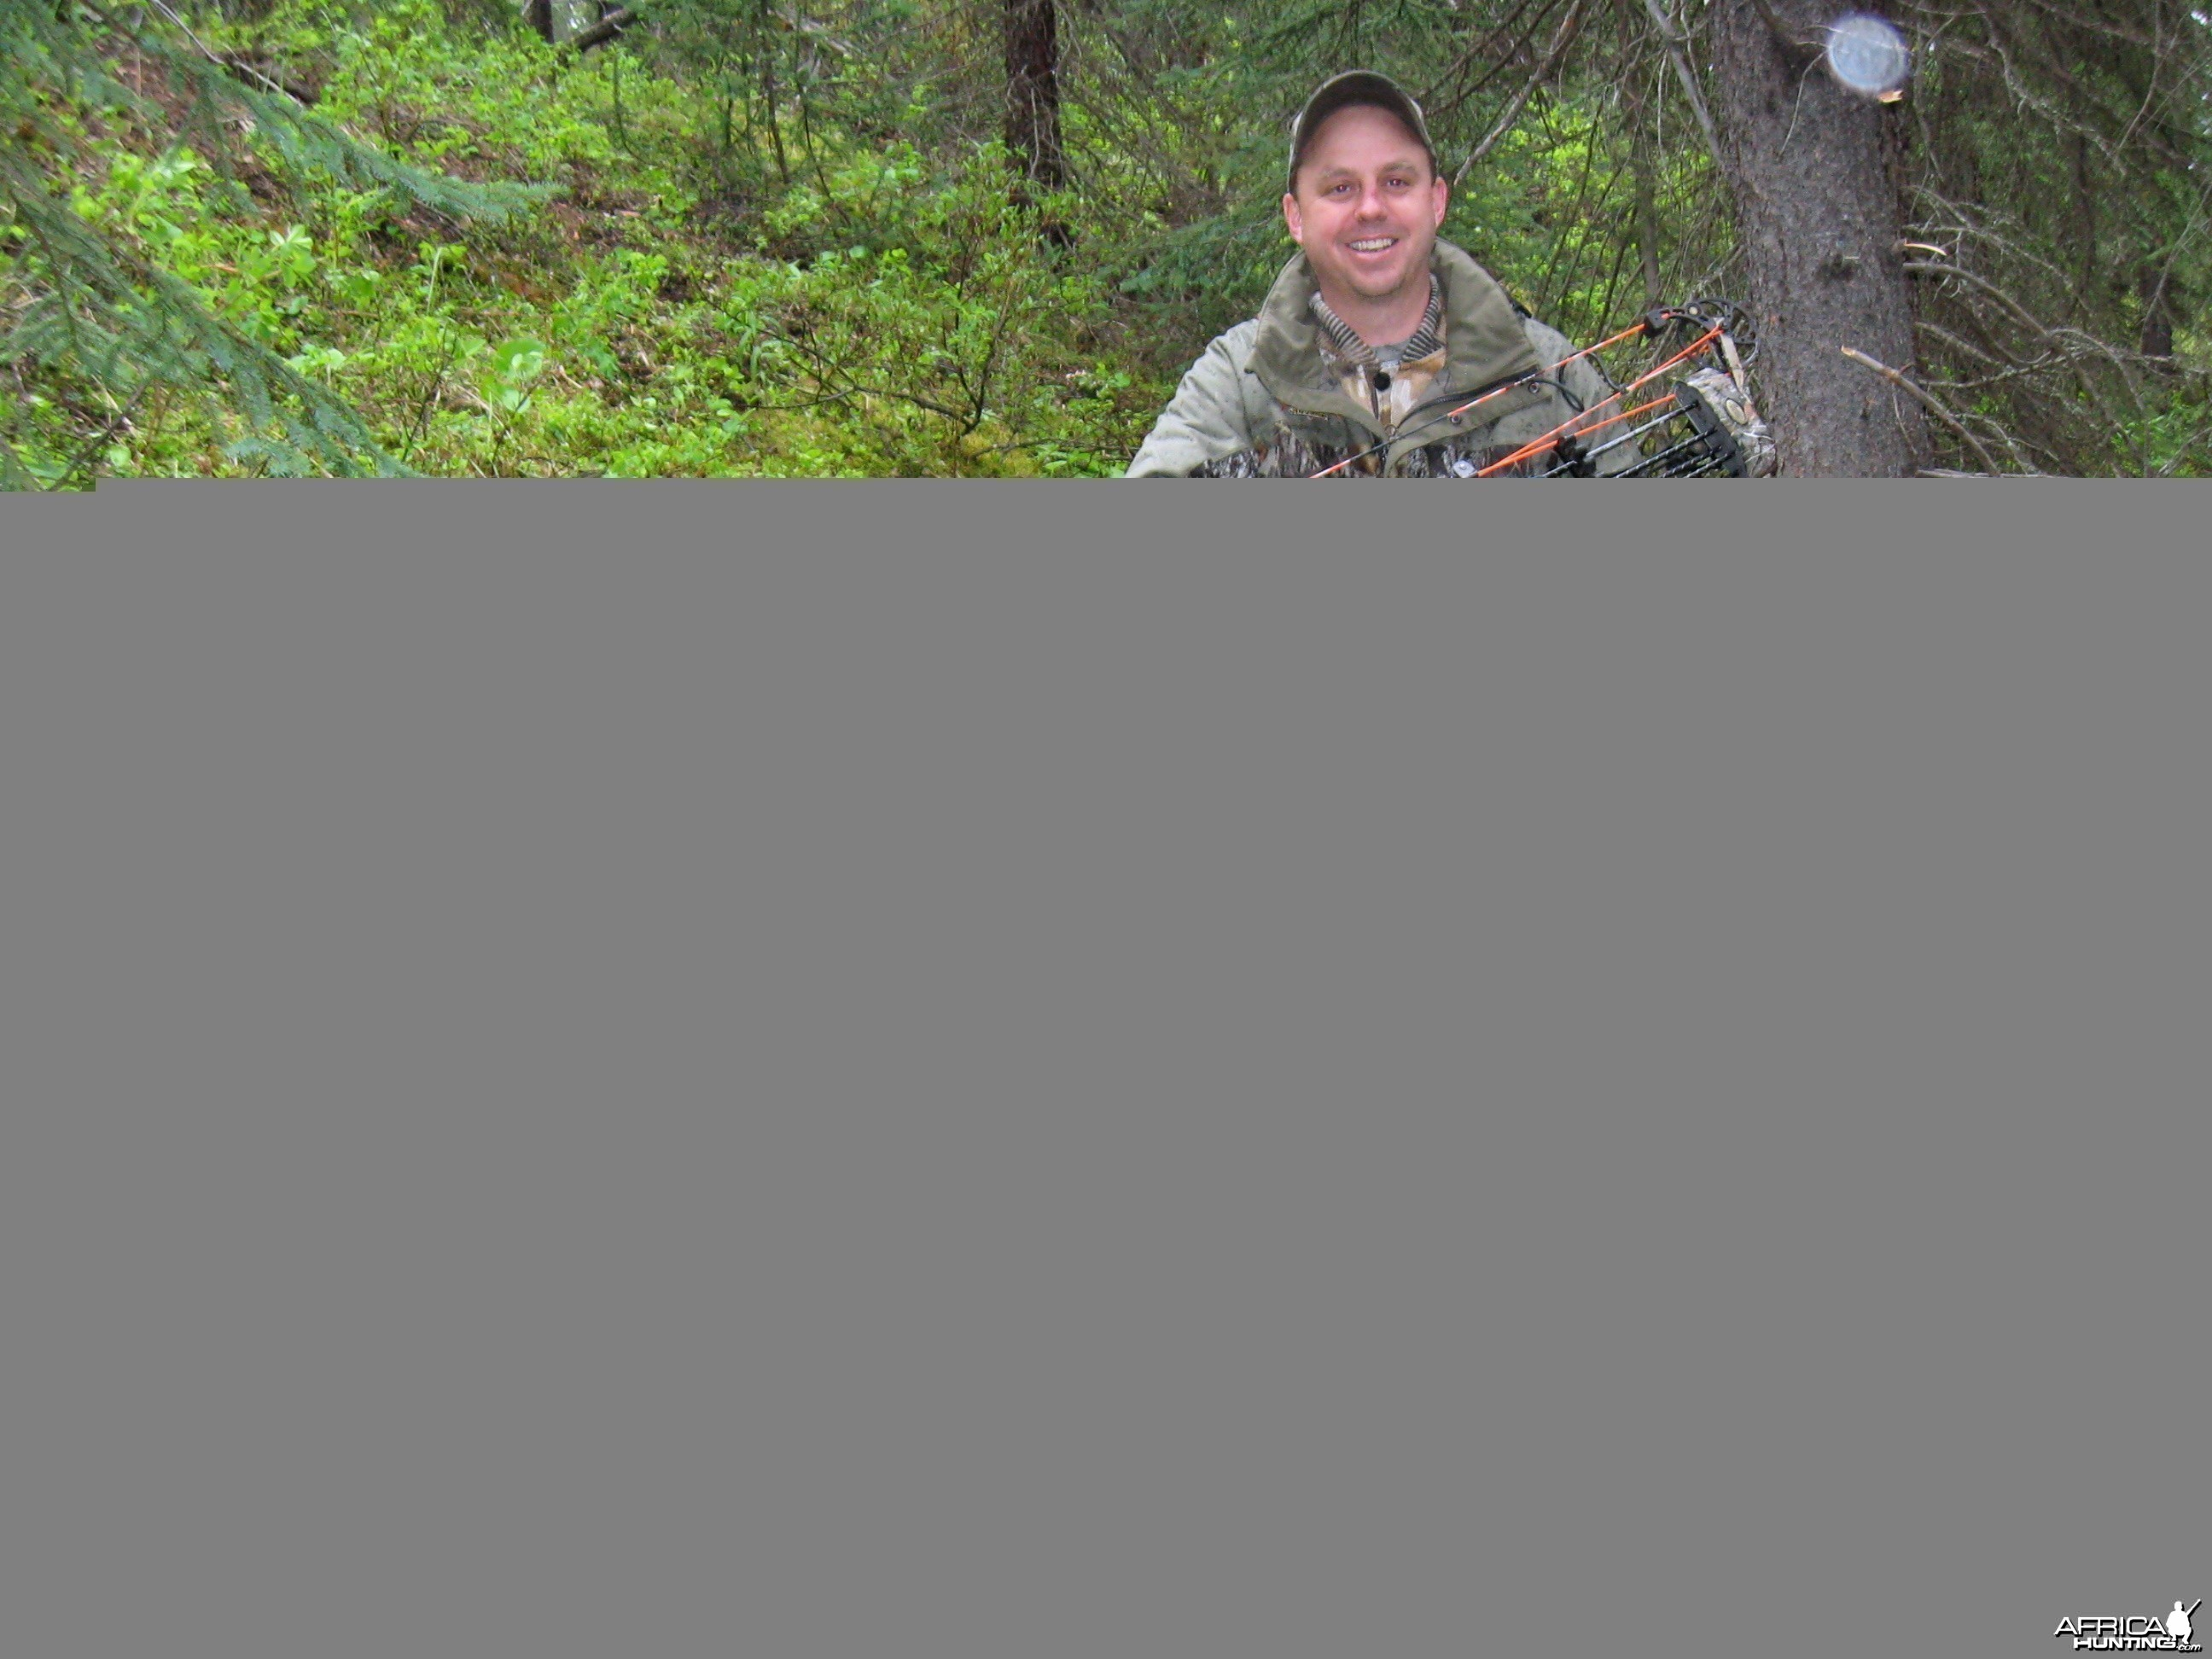 Nice bear taken with archery tackle